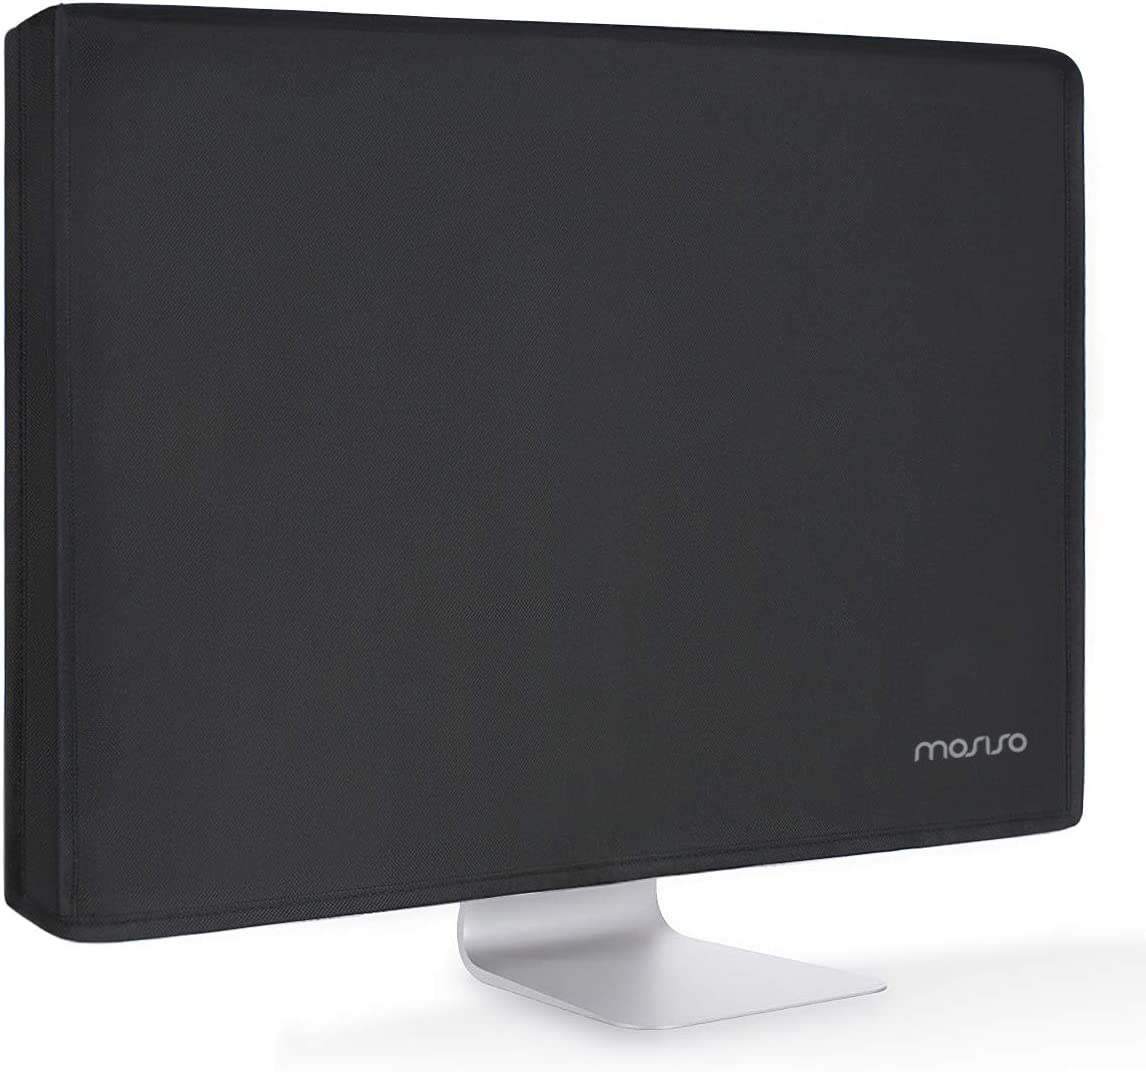 MOSISO Monitor Dust Cover 22, 23, 24, 25 inch Anti-Static Polyester LCD/LED/HD Panel Case Screen Display Protective Sleeve Compatible with 22-25 inch iMac, PC, Desktop Computer and TV, Black